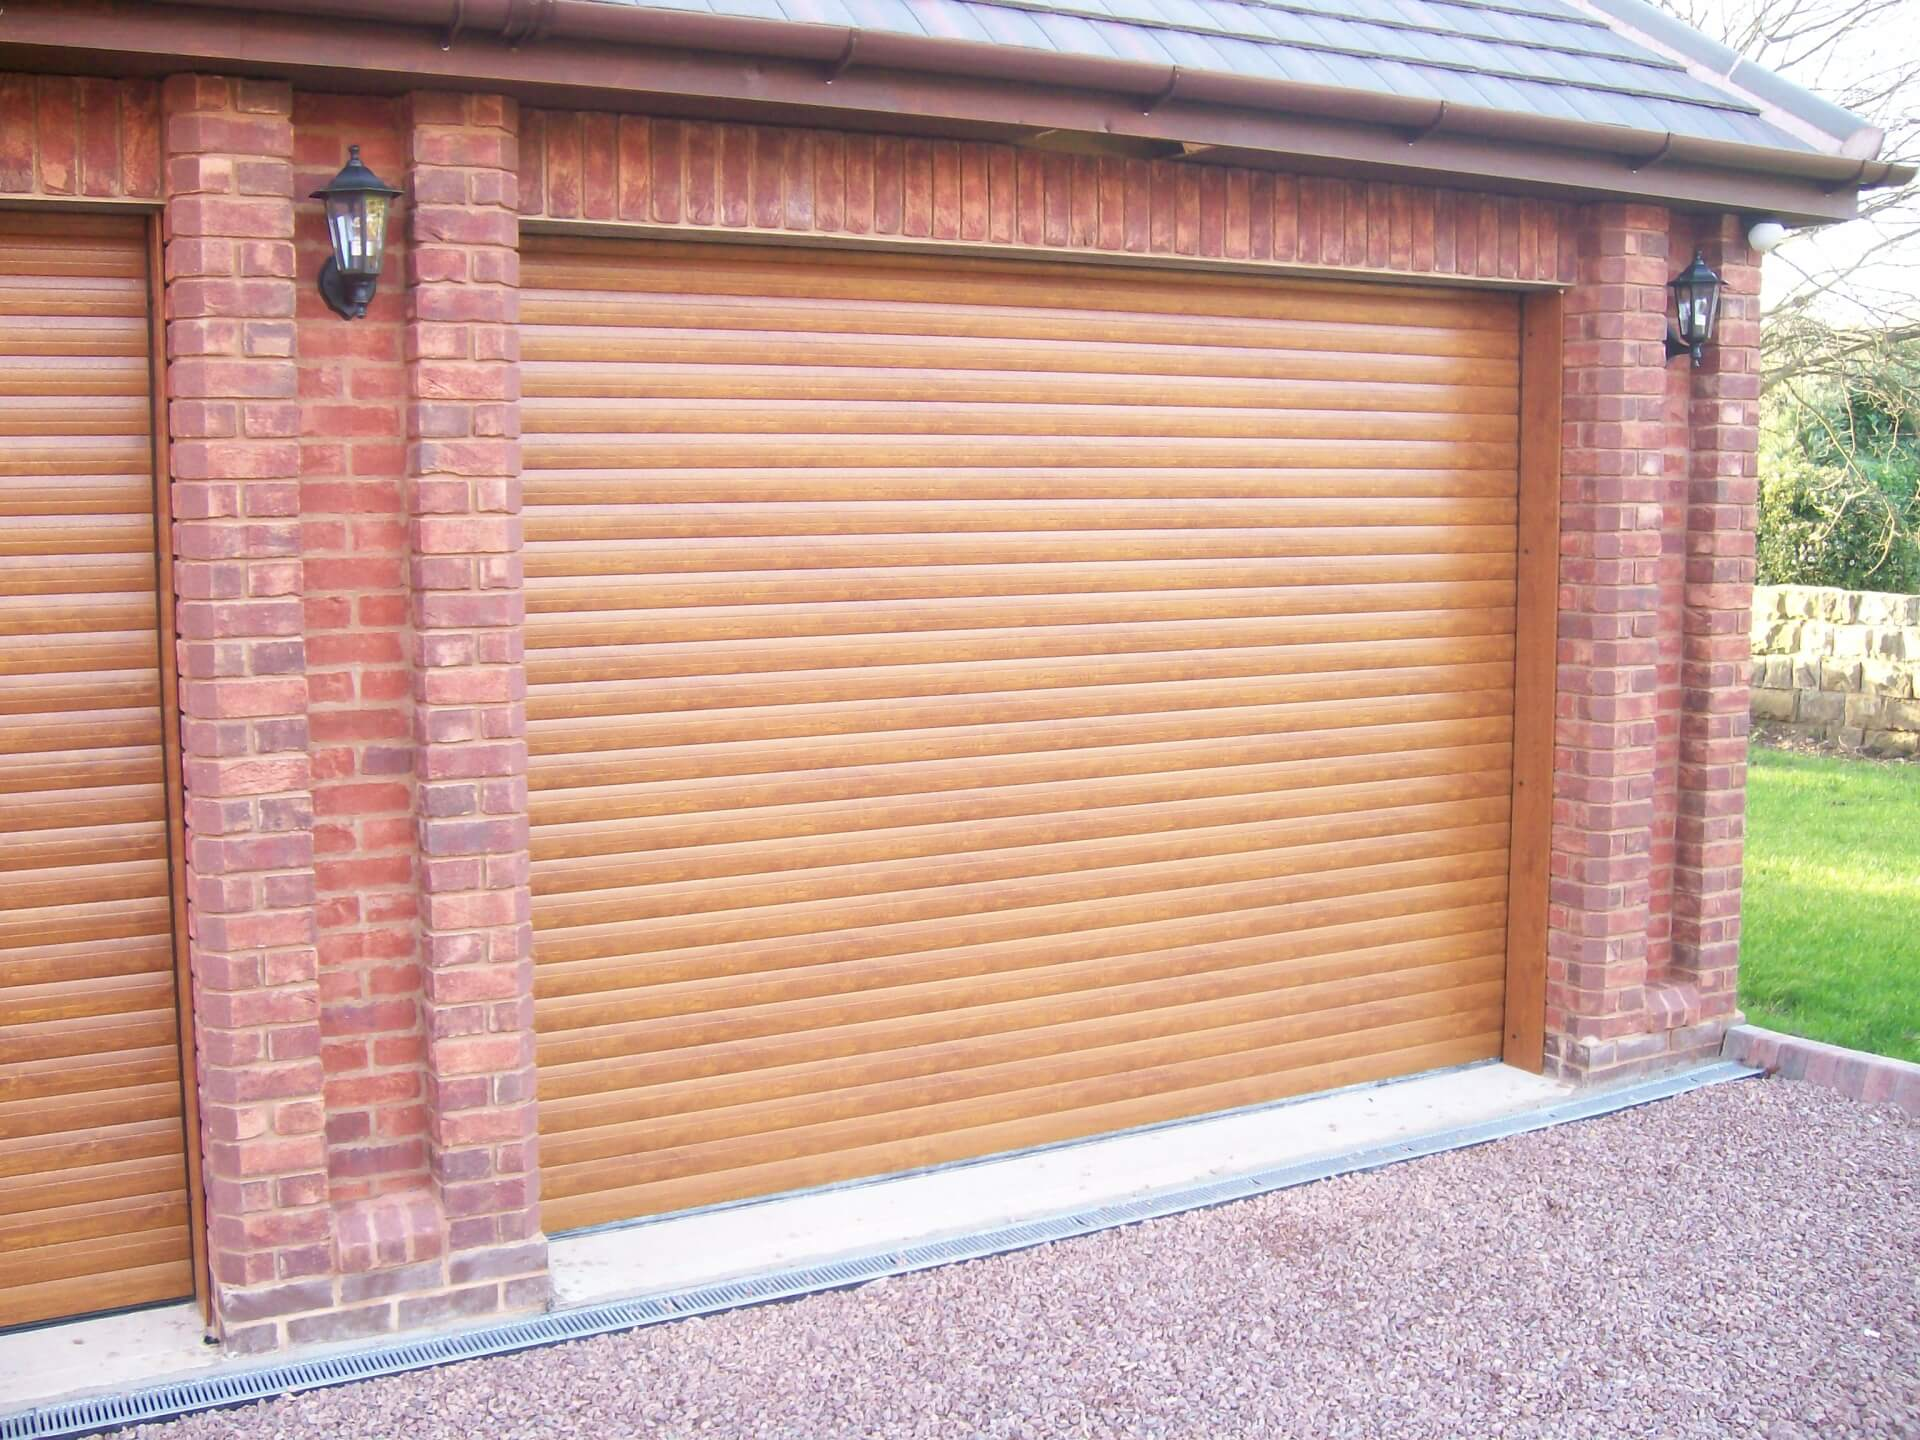 Premier garage doors insulated roller shutters drs premier for Premier garage doors